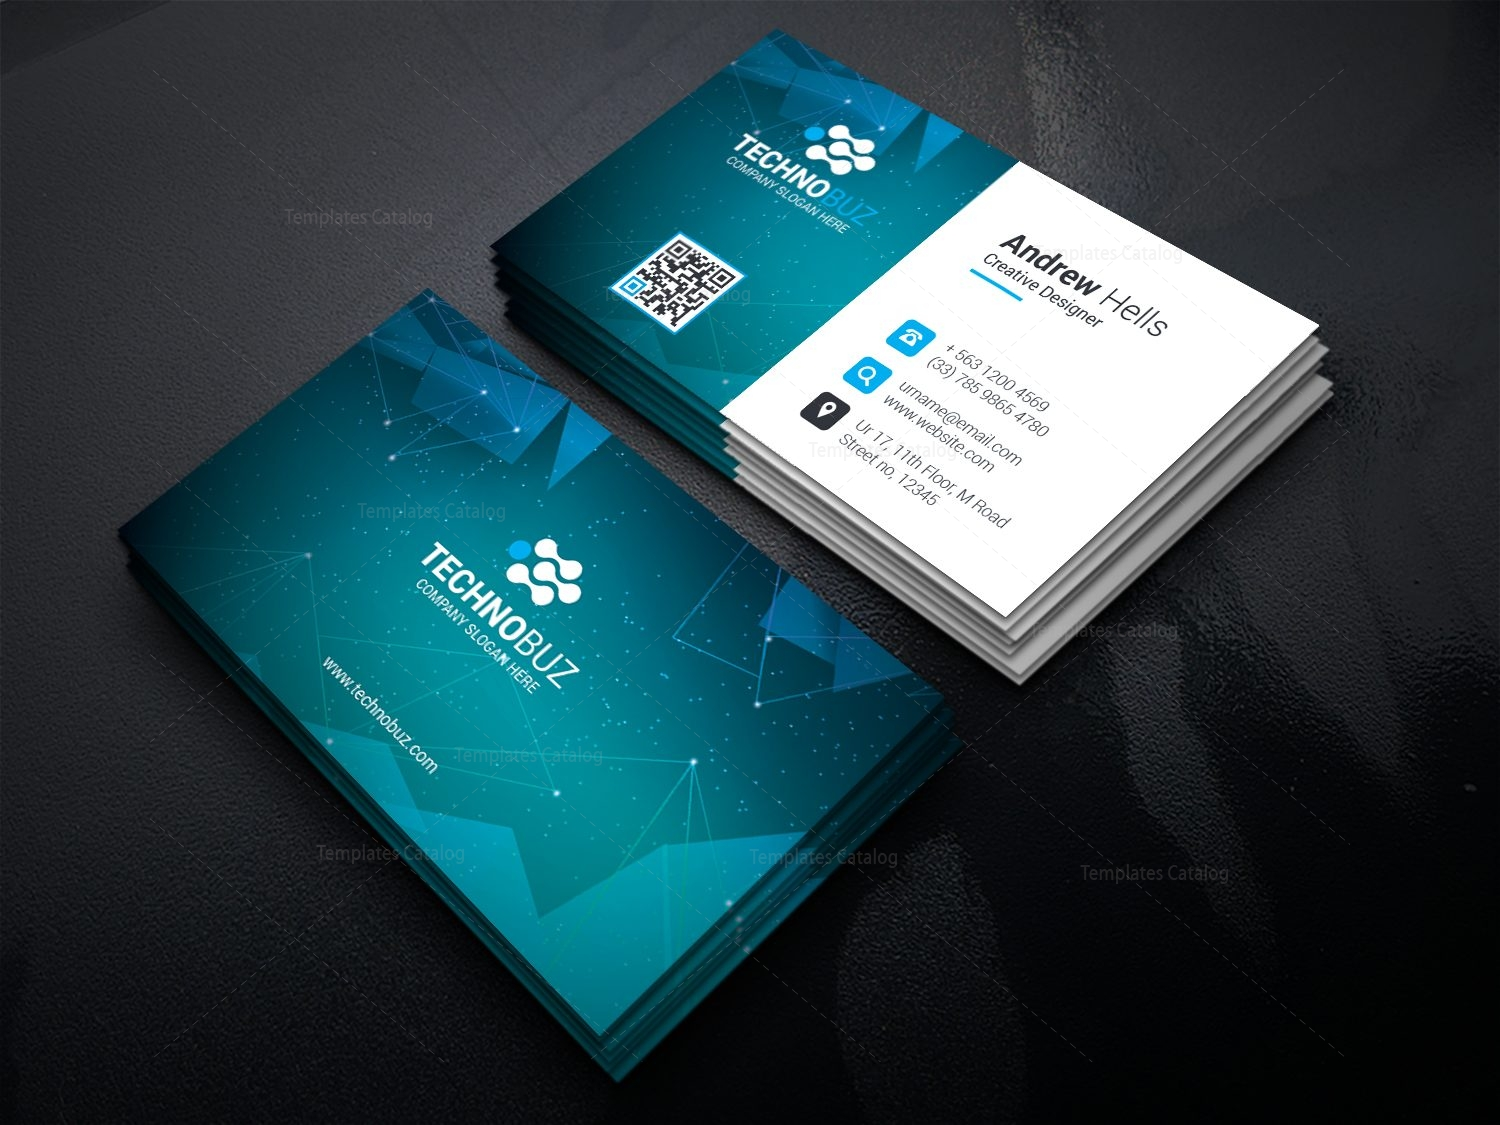 Space technology business card template 000752 template catalog space technology business card template 2 cheaphphosting Image collections